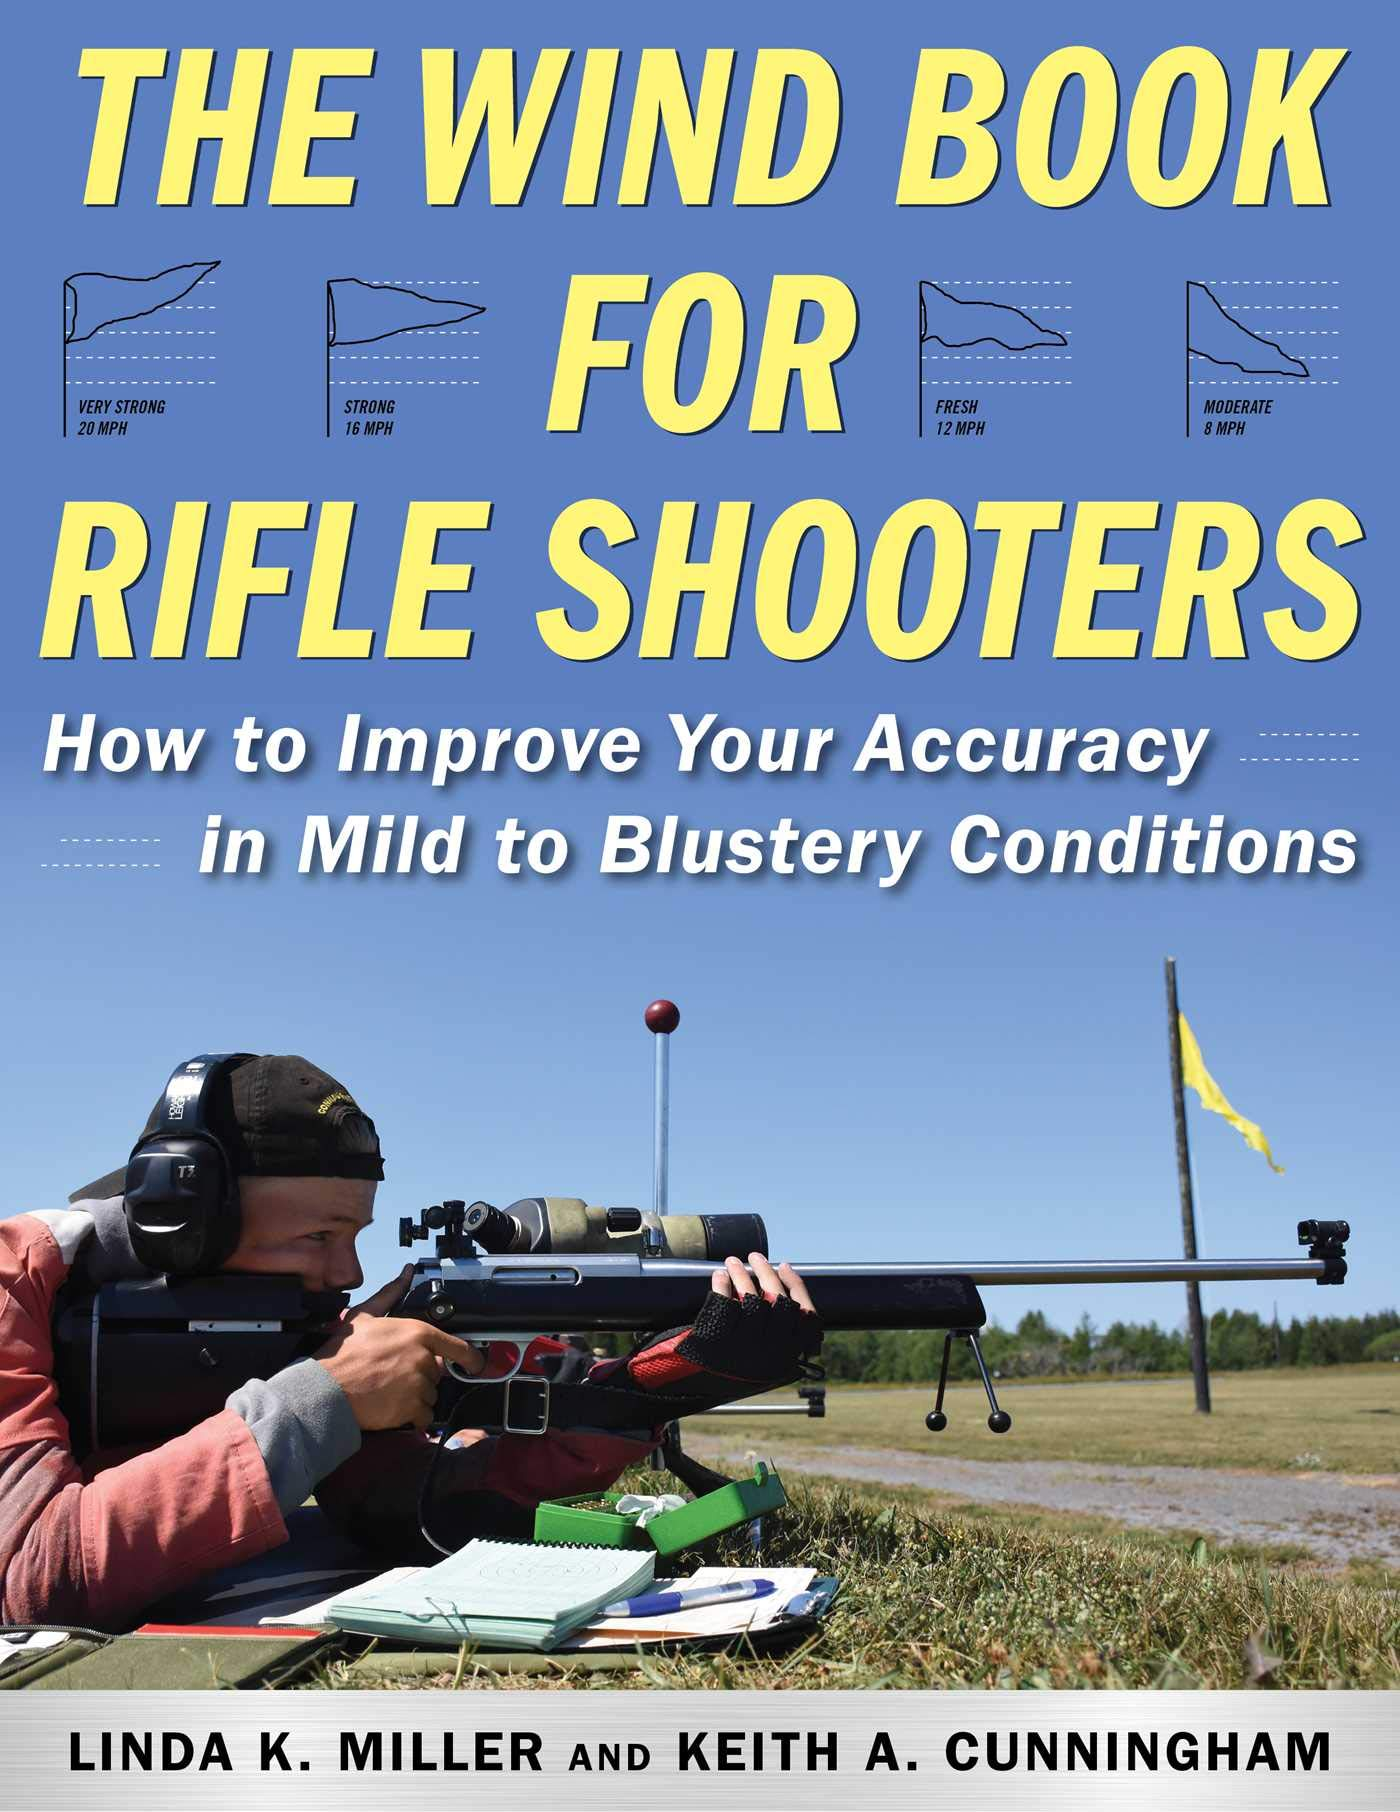 The Wind Book for Rifle Shooters: How to Improve Your Accuracy in Mild to Blustery Conditions Hardcover – February 19, 2019 Linda K. Miller Keith A. Cunningham Skyhorse 1510739726